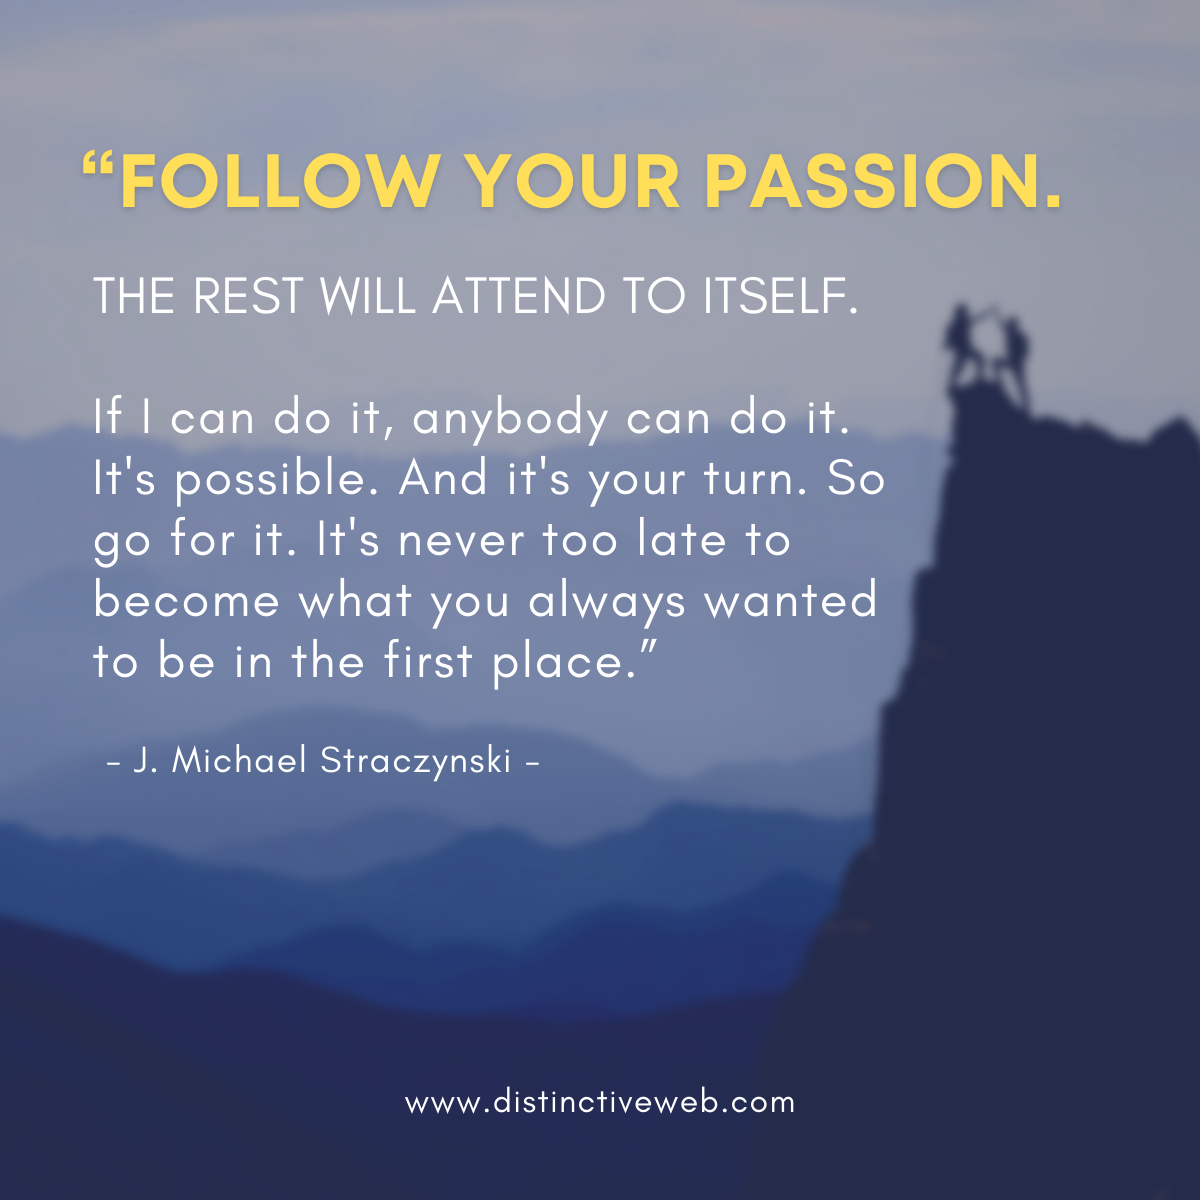 """""""Follow your passion. The rest will attend to itself. If I can do it, anybody can do it. It's possible. And it's your turn. So go for it. It's never too late to become what you always wanted to be in the first place."""" -- J. Michael Straczynski"""